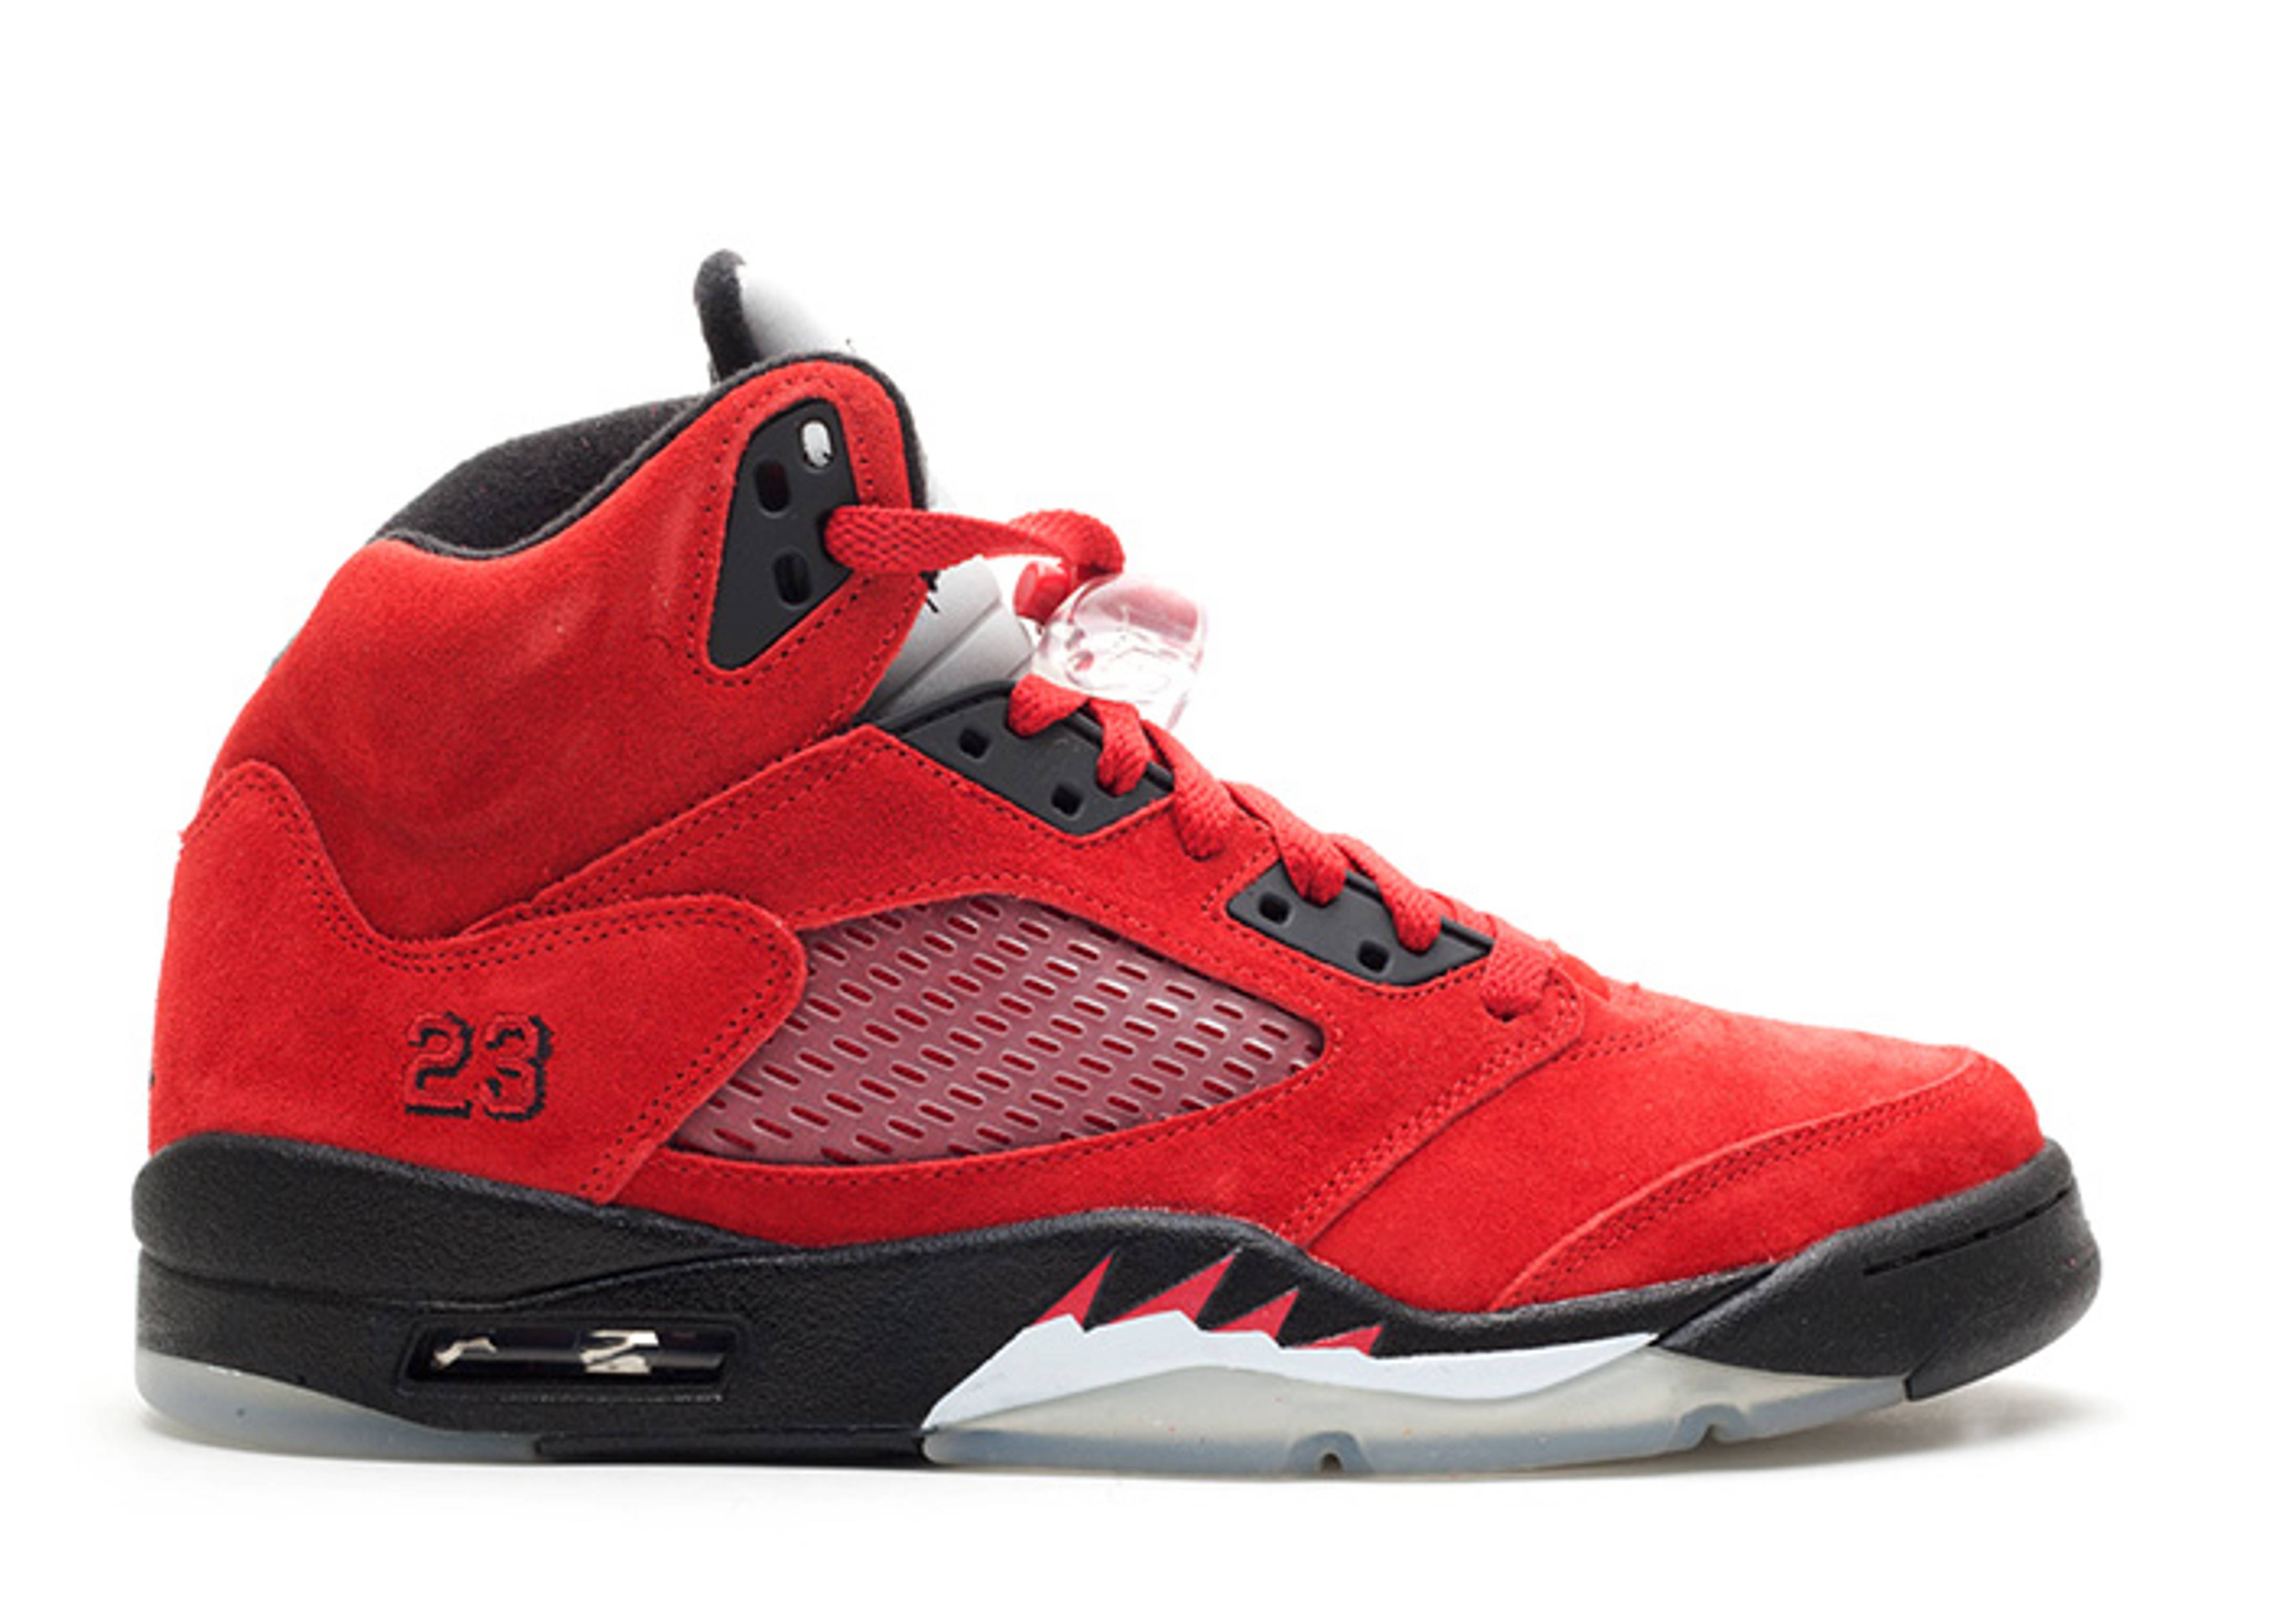 air jordan 5 retro dmp \u0026quot;raging bull pack\u0026quot;